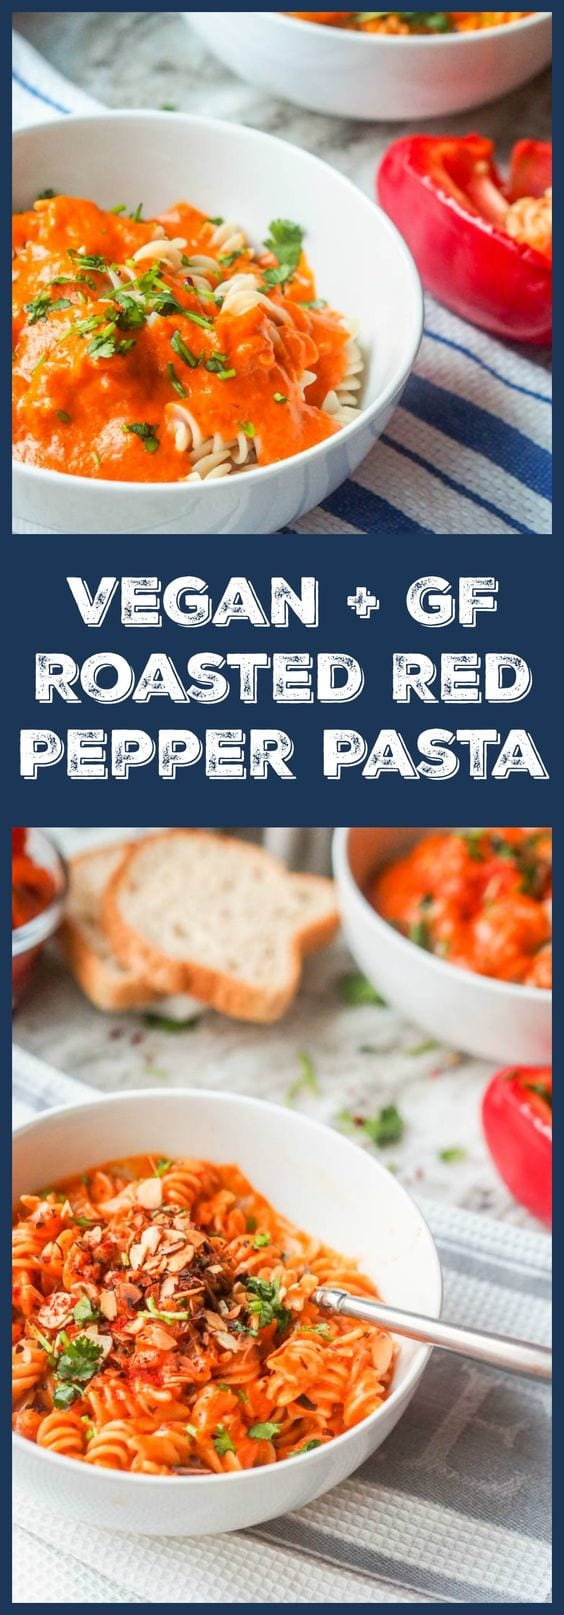 Skip the tomato sauce and make vegan roasted red pepper pasta instead. So creamy and cheesey you'll never know it's vegan. Gluten Free too. Ready in 30 mins. #pasta #dinner #vegan #meatlessmonday